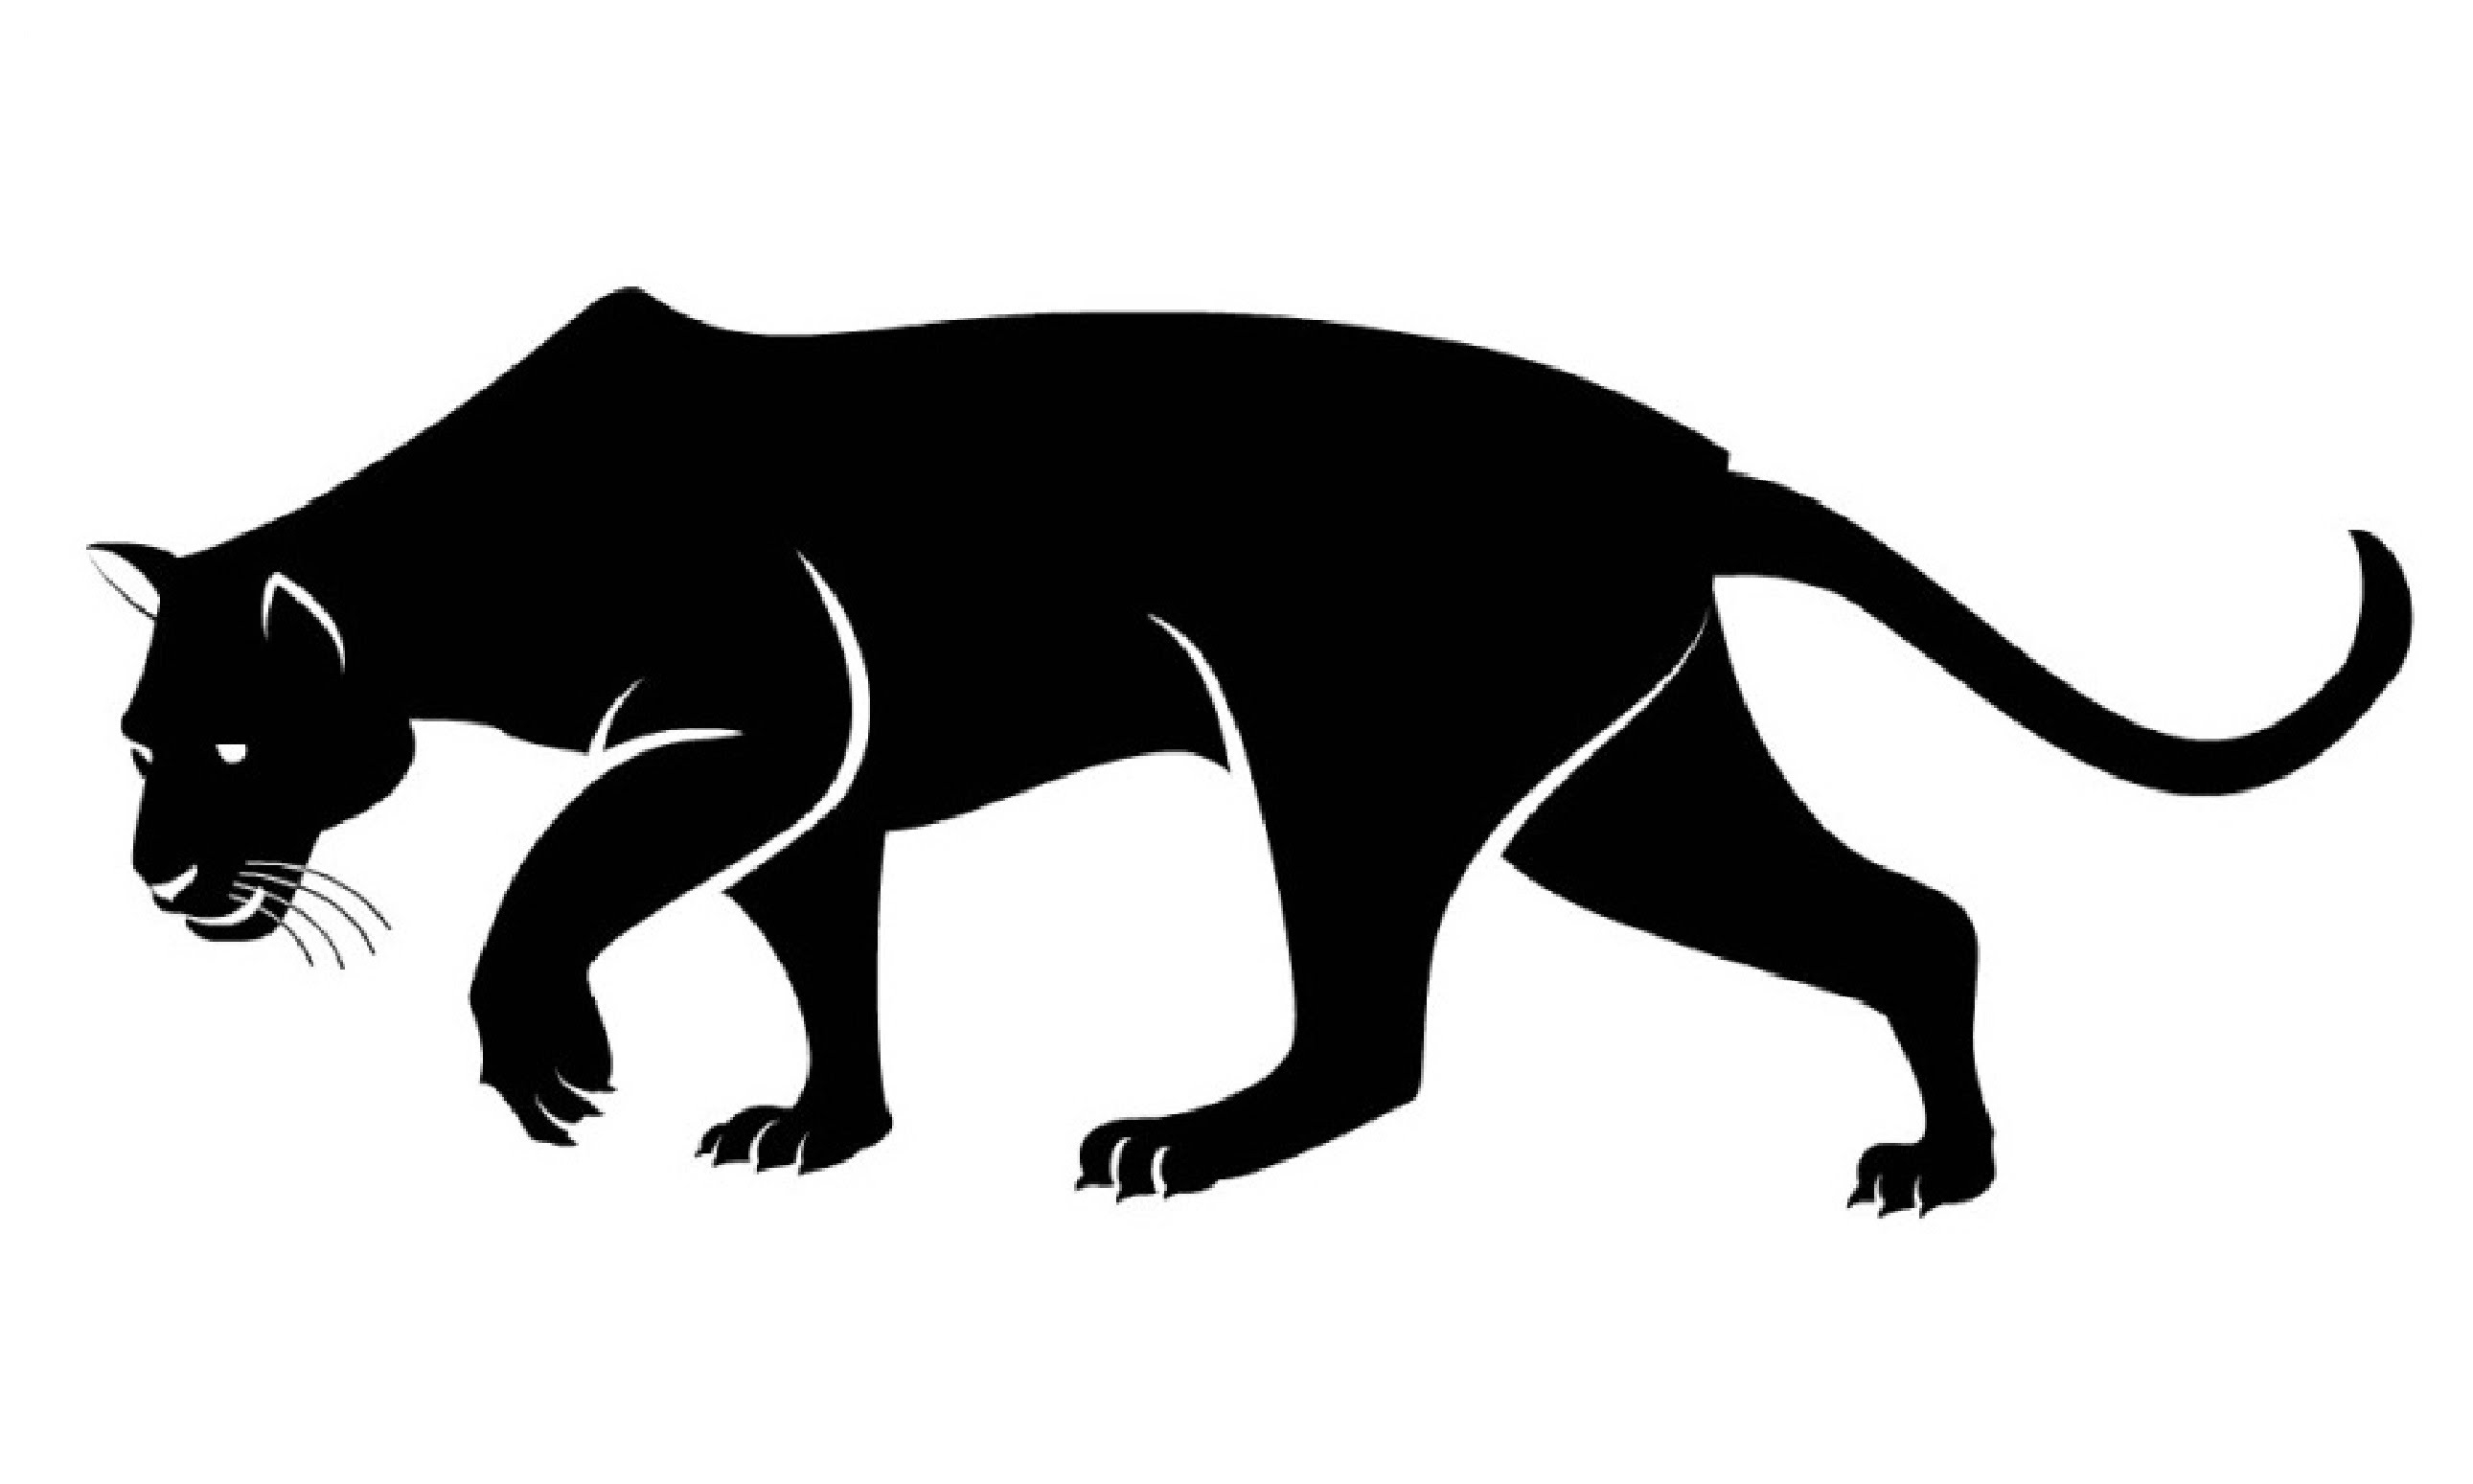 Panther clipart easy. Cute drawing free download